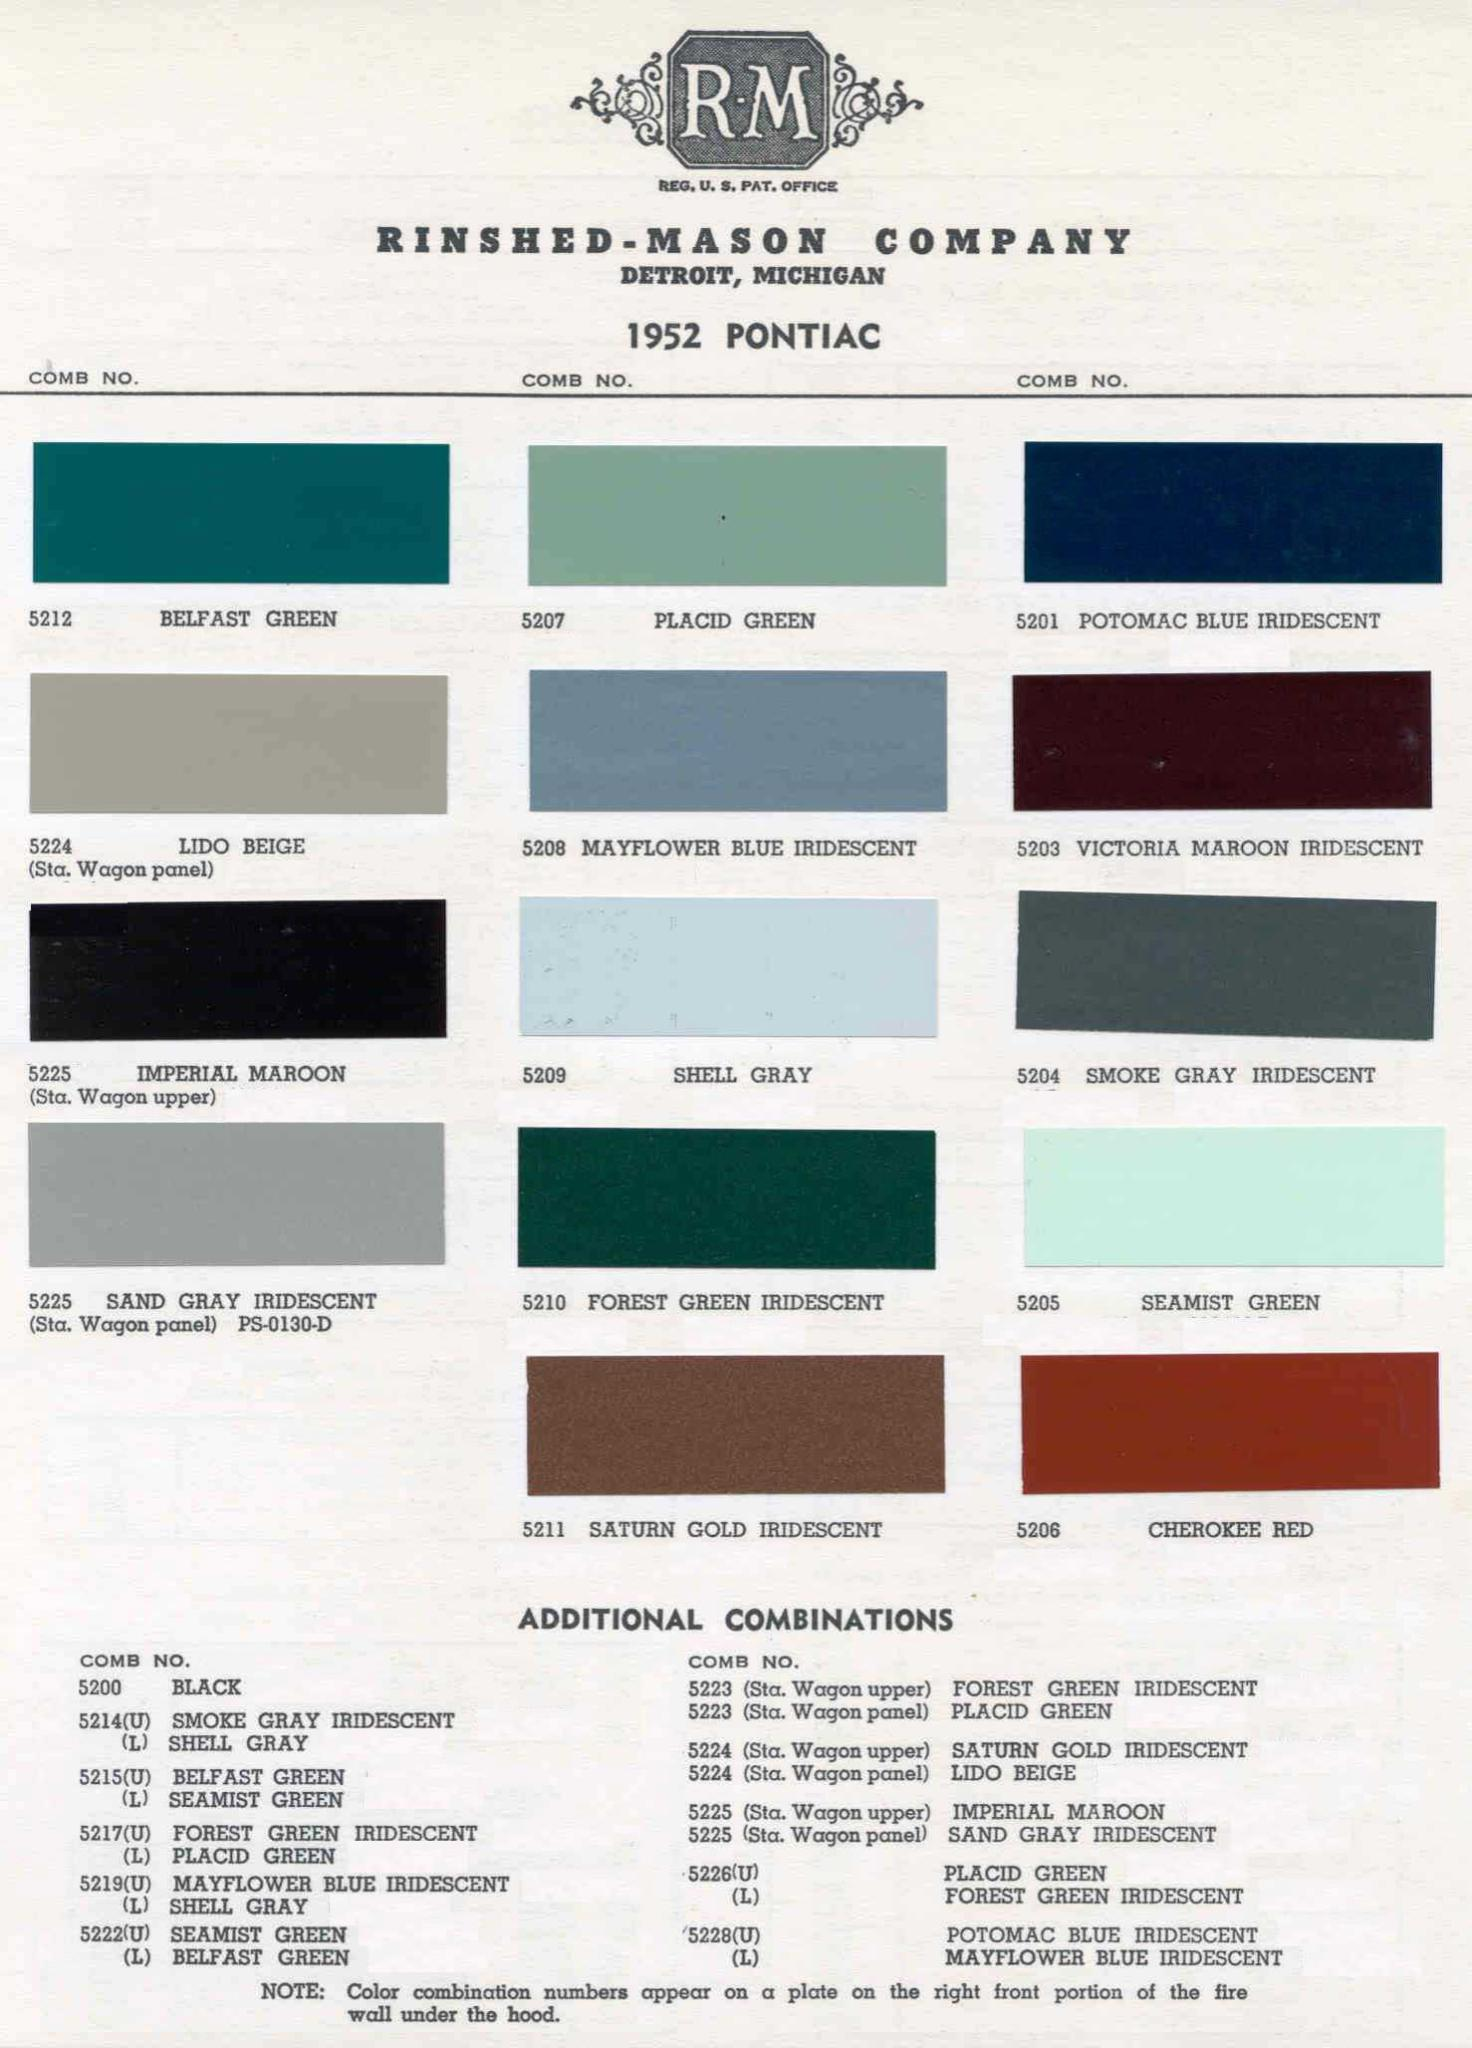 Color Code and Paint Color Chart for Pontiac for 1952